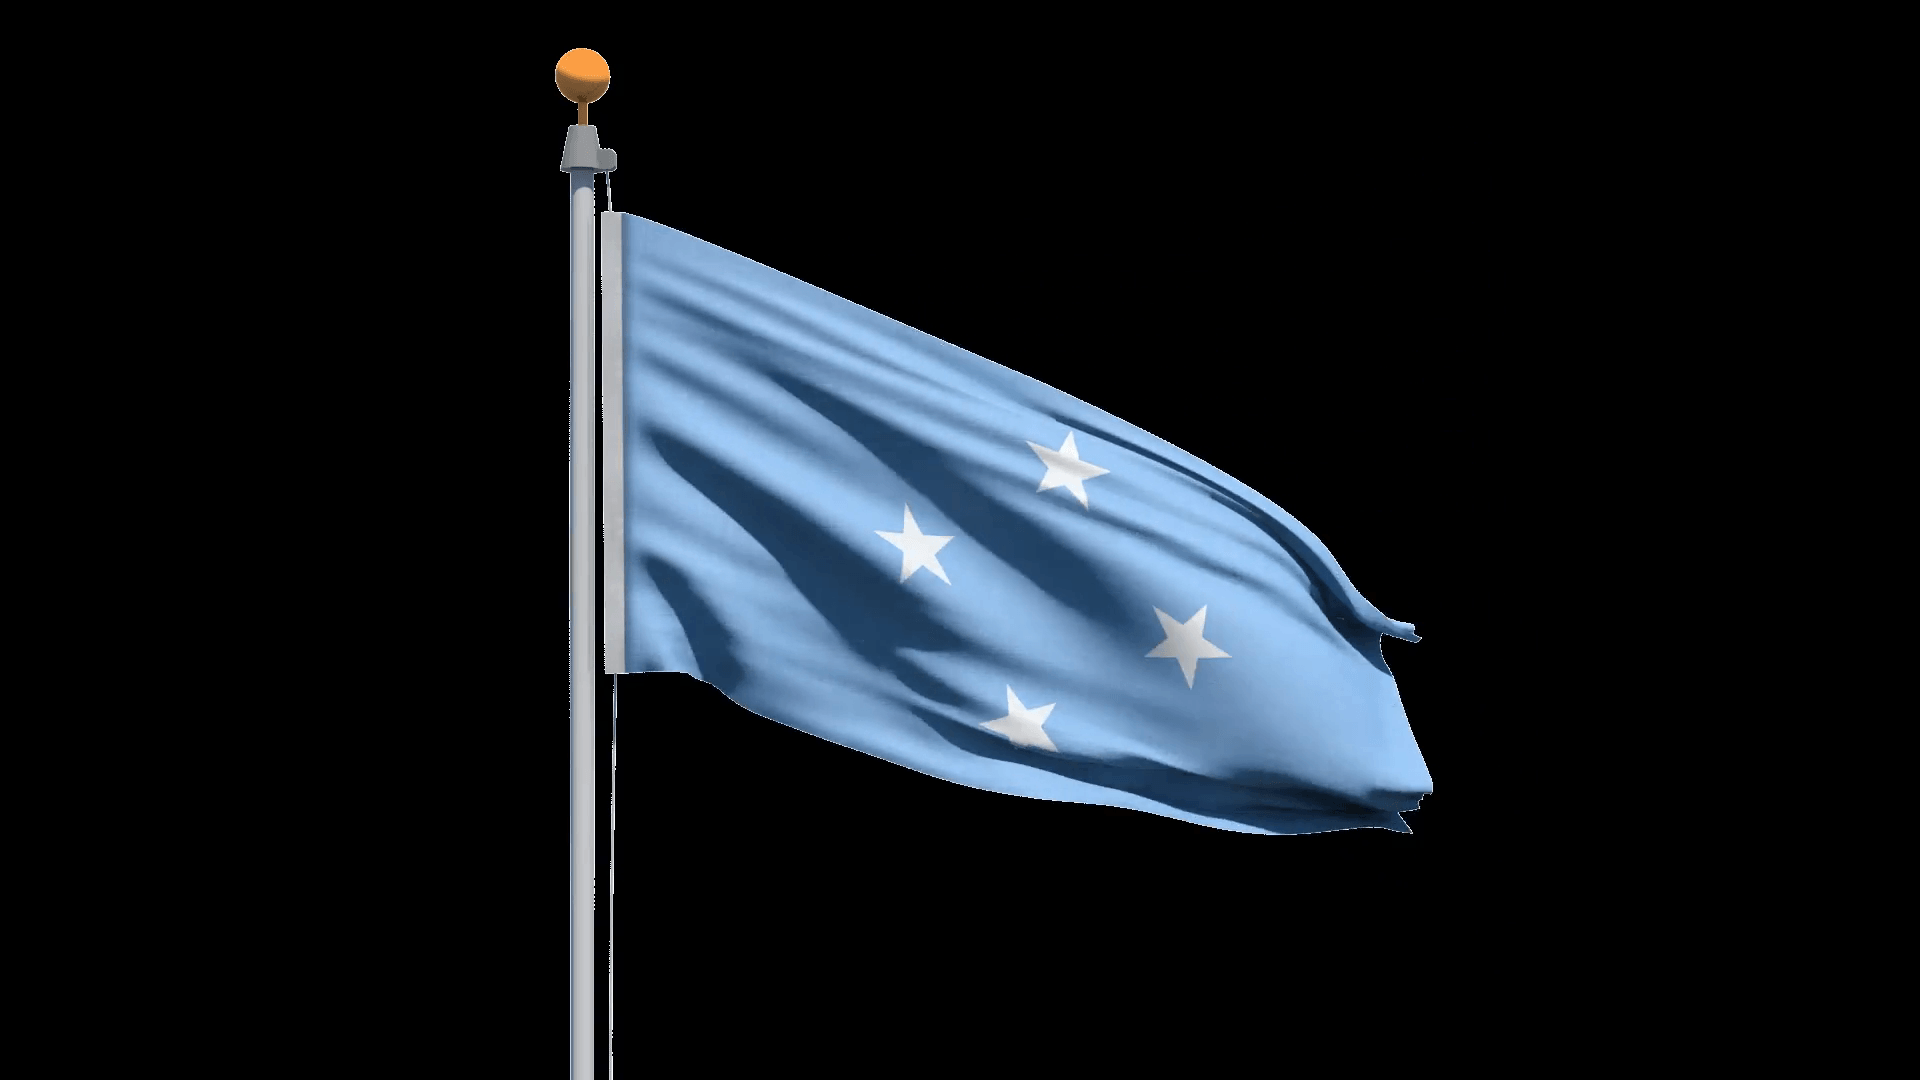 Flag of the Federated States of Micronesia waving in the wind, with